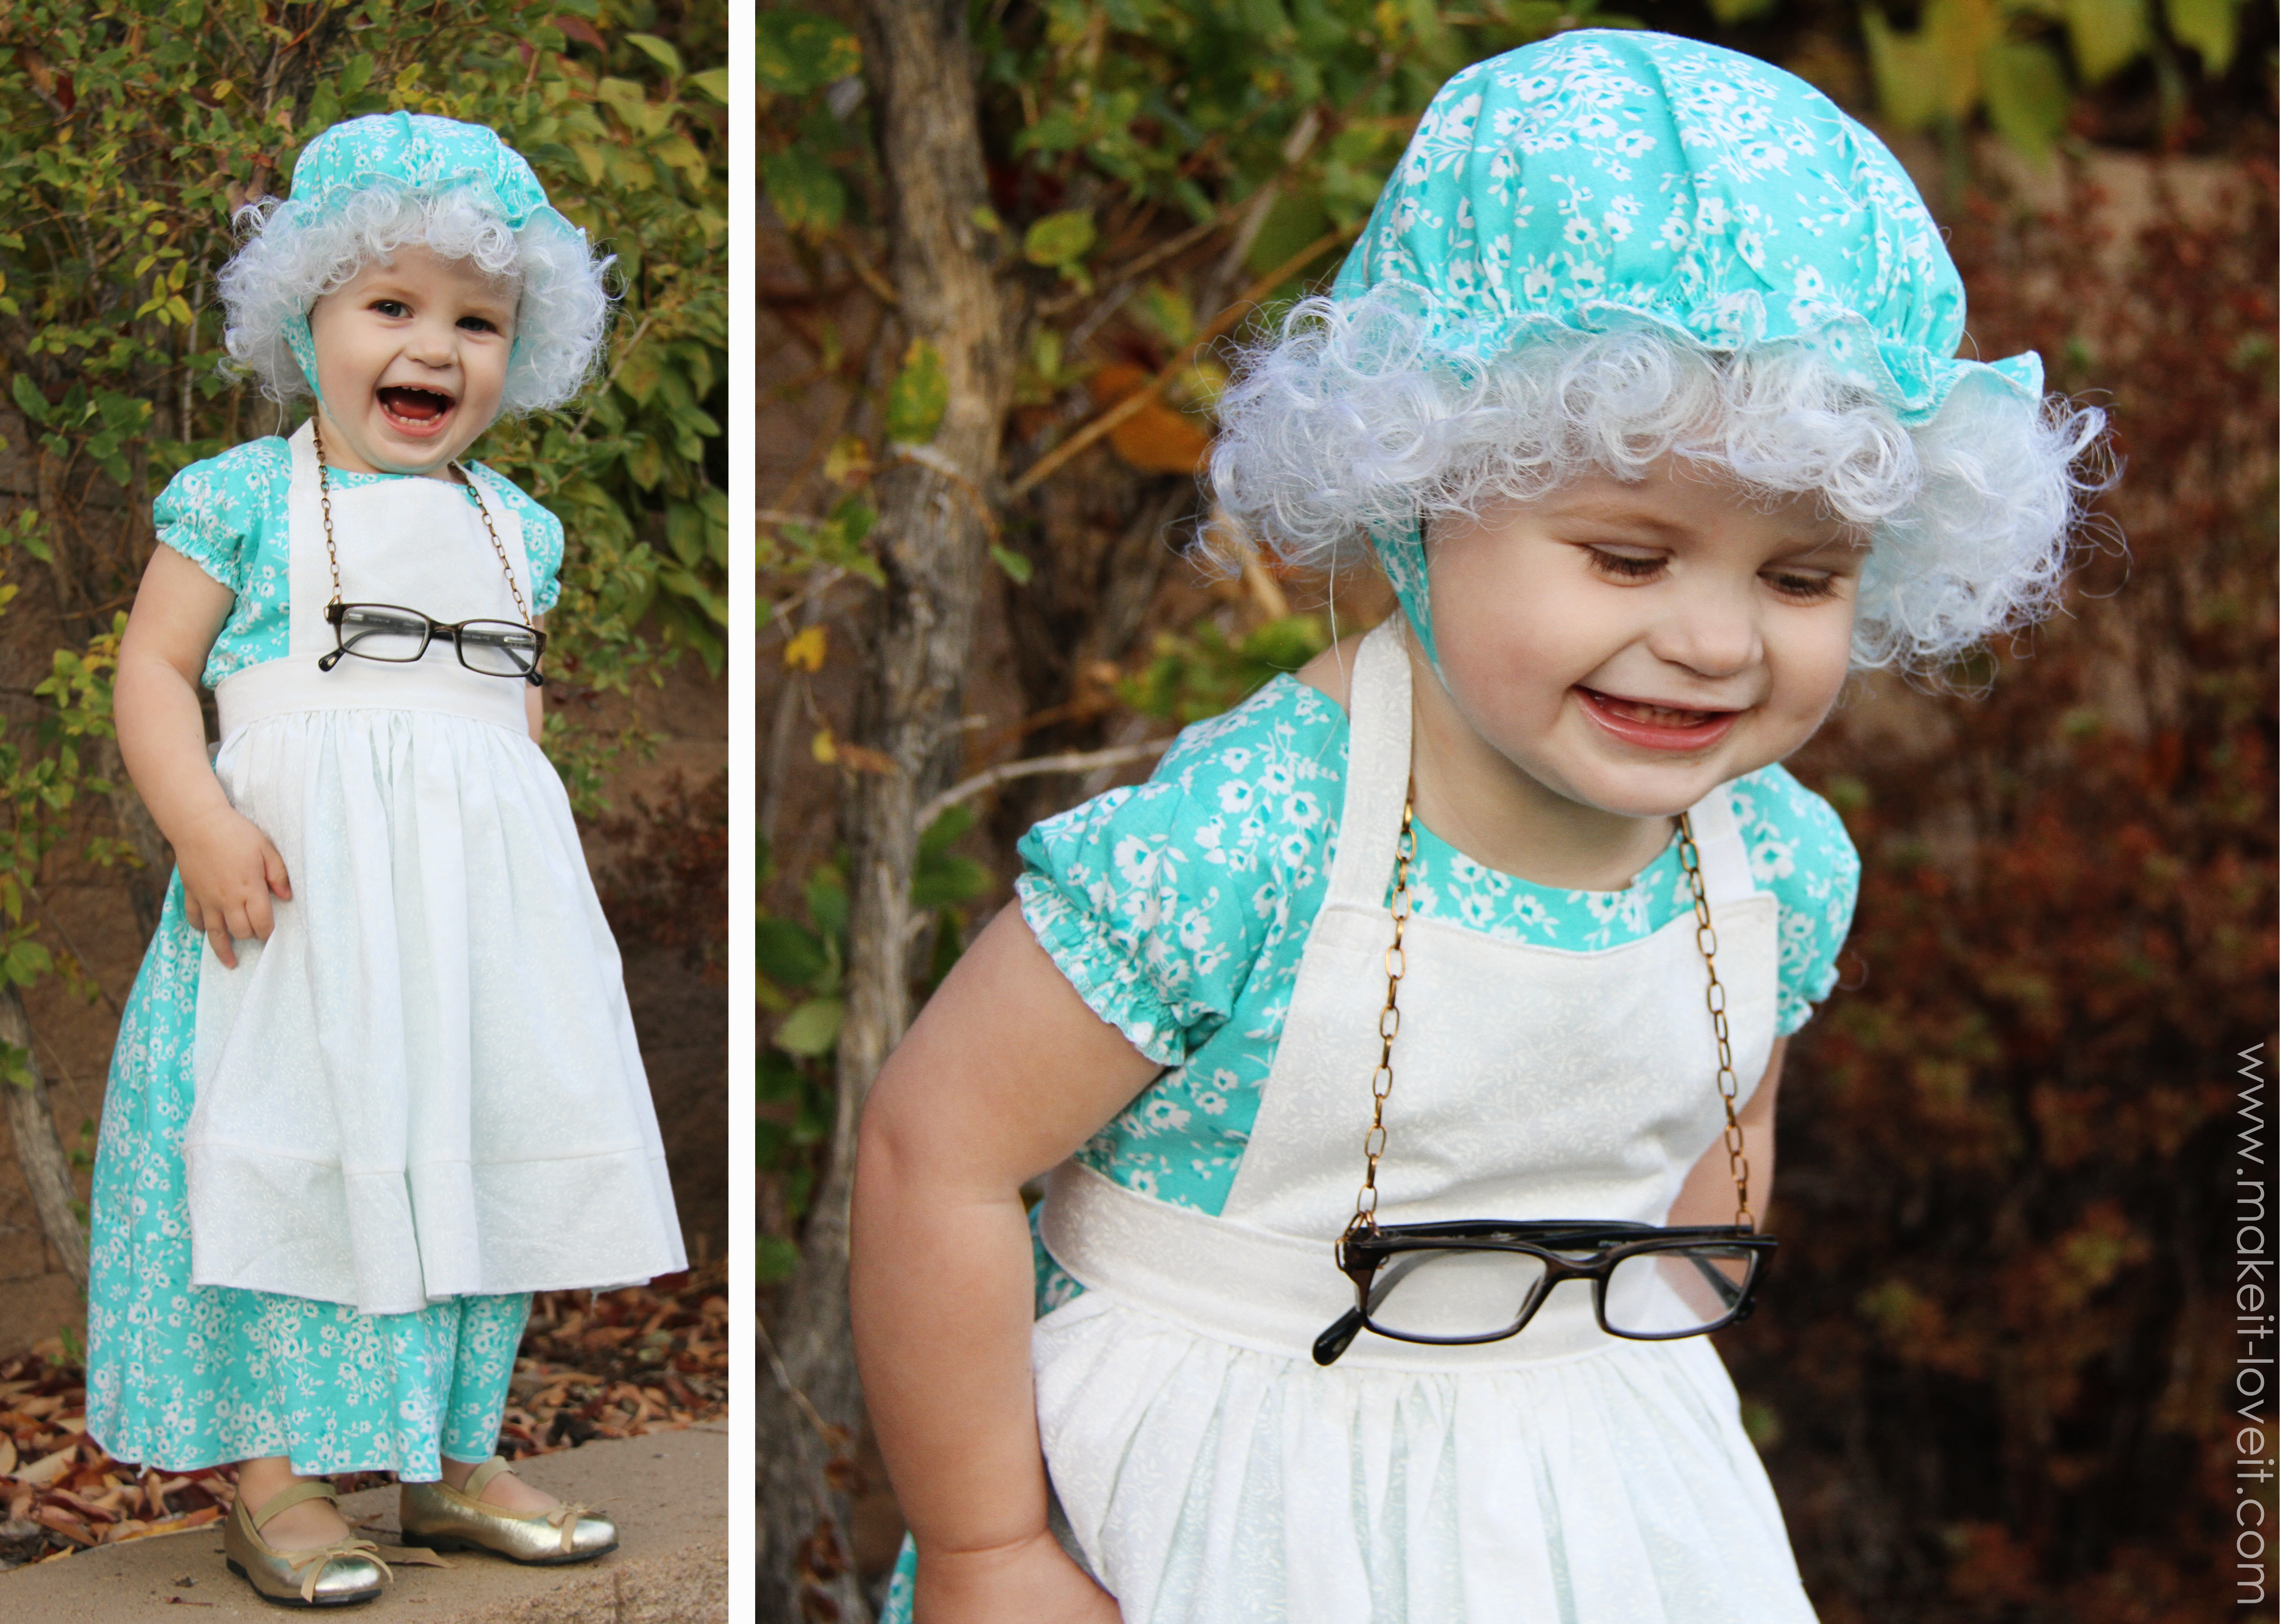 And well that granny cap and dress/apron combo finish it off perfectly!  sc 1 st  Bloglovin & Halloween Costumes 2012: The Granny (from u0027Little Red Riding Hood ...